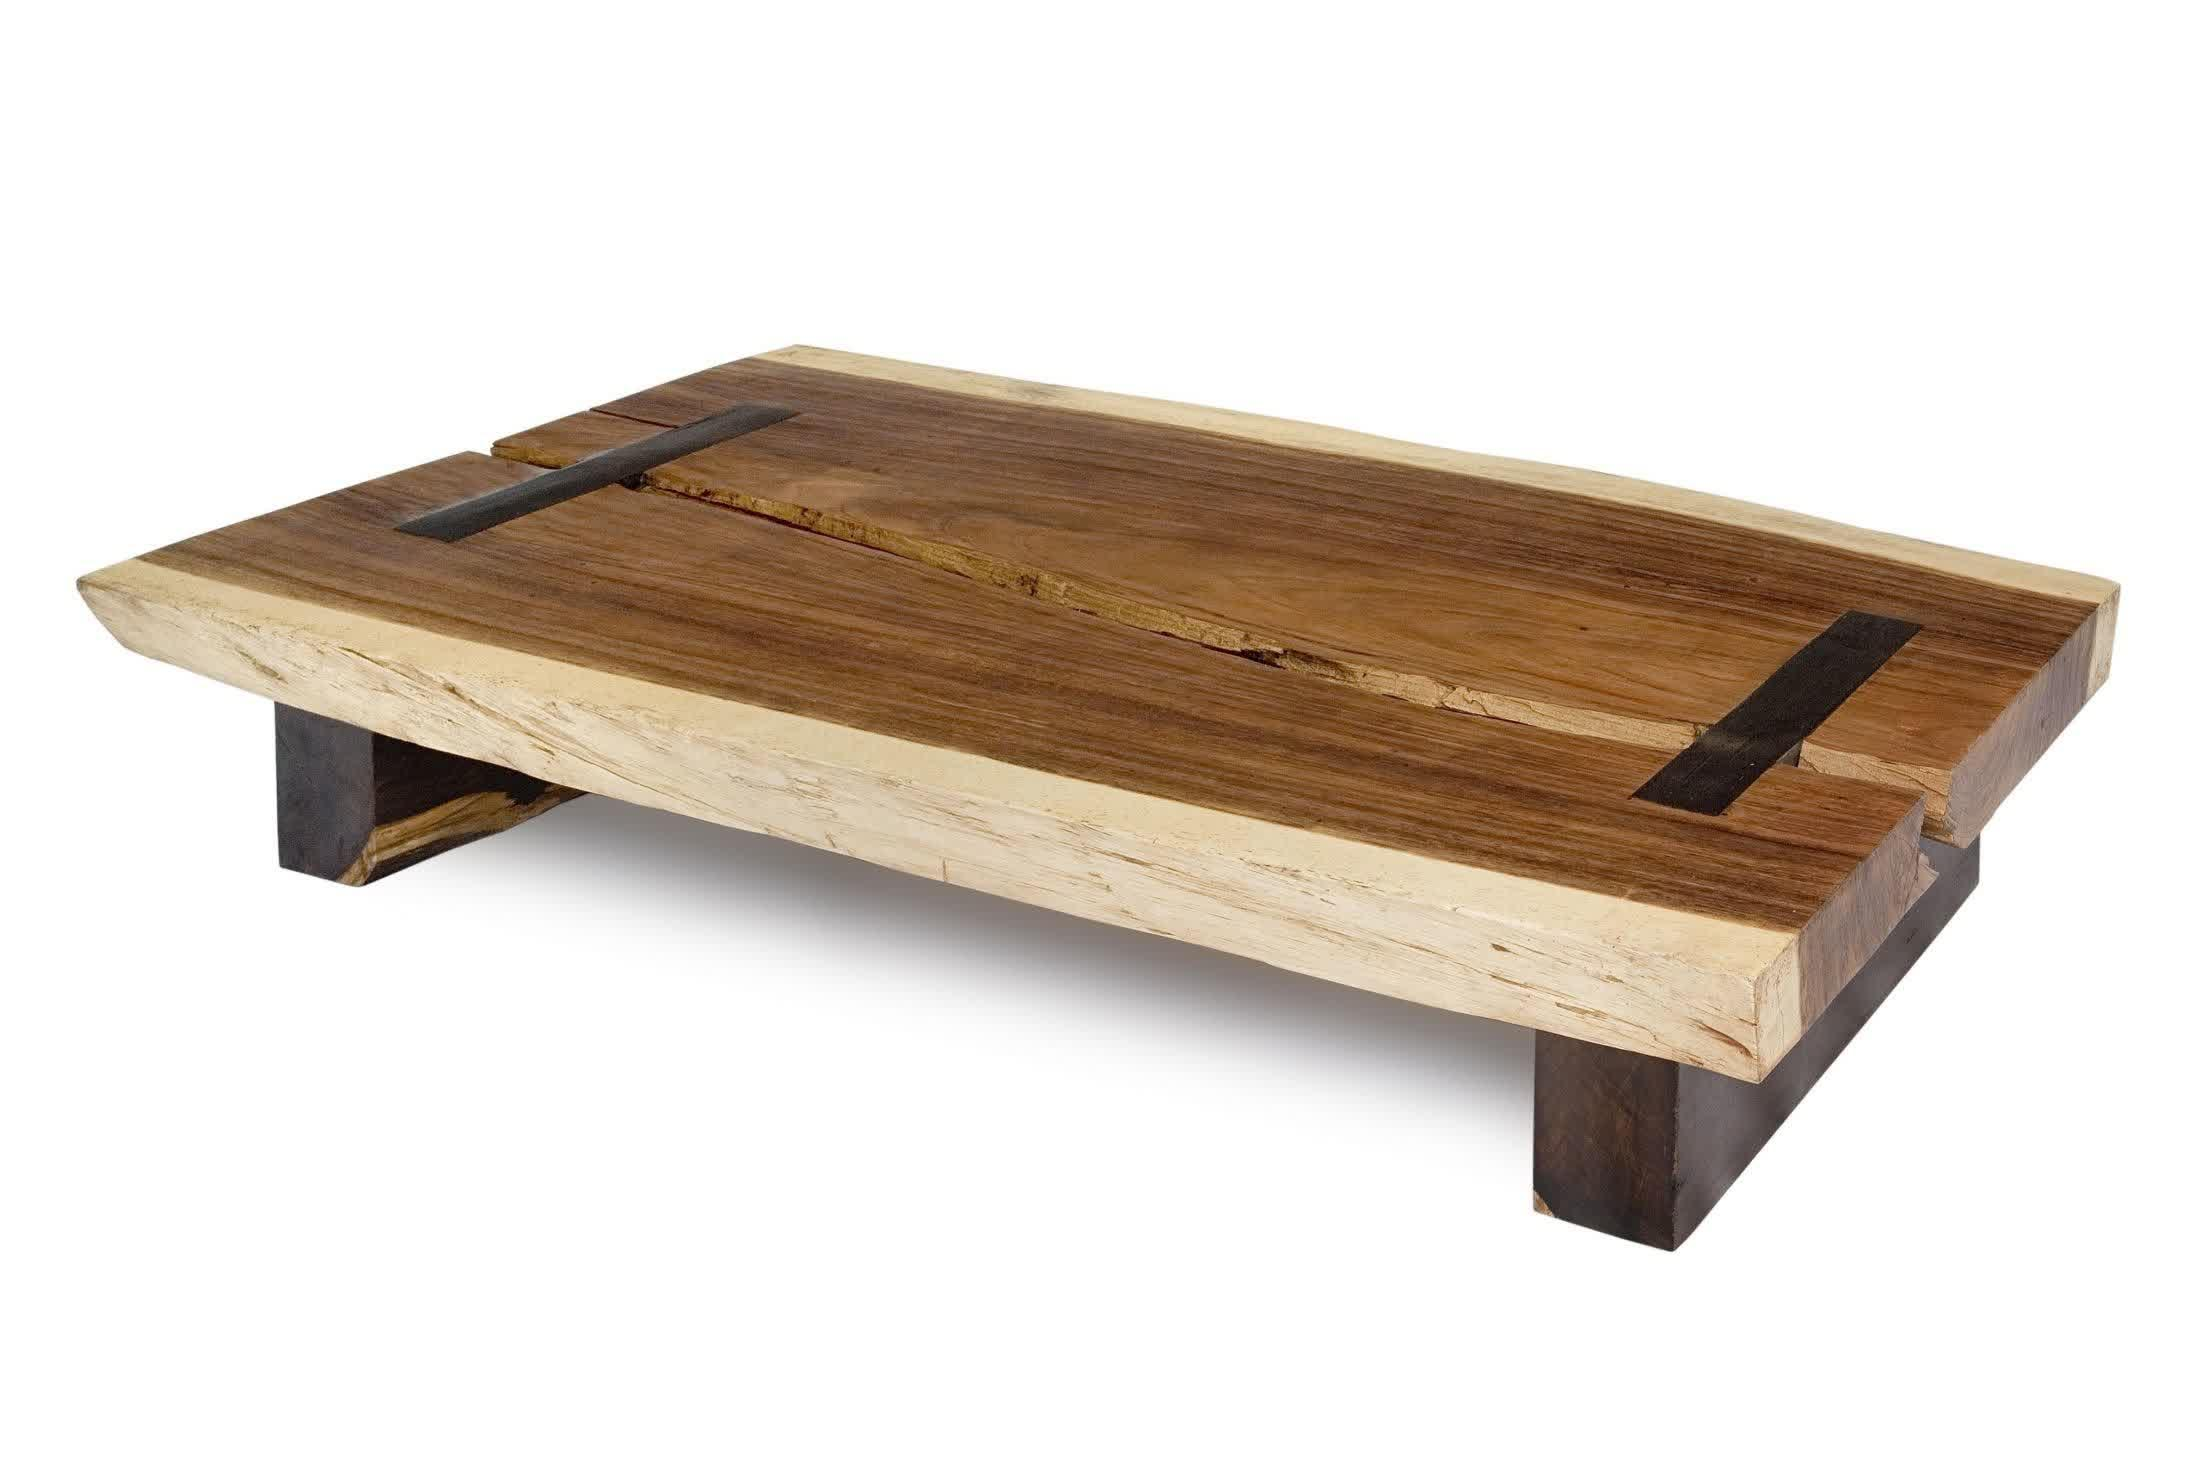 Small low coffee table coffee table design ideas Low wooden coffee table